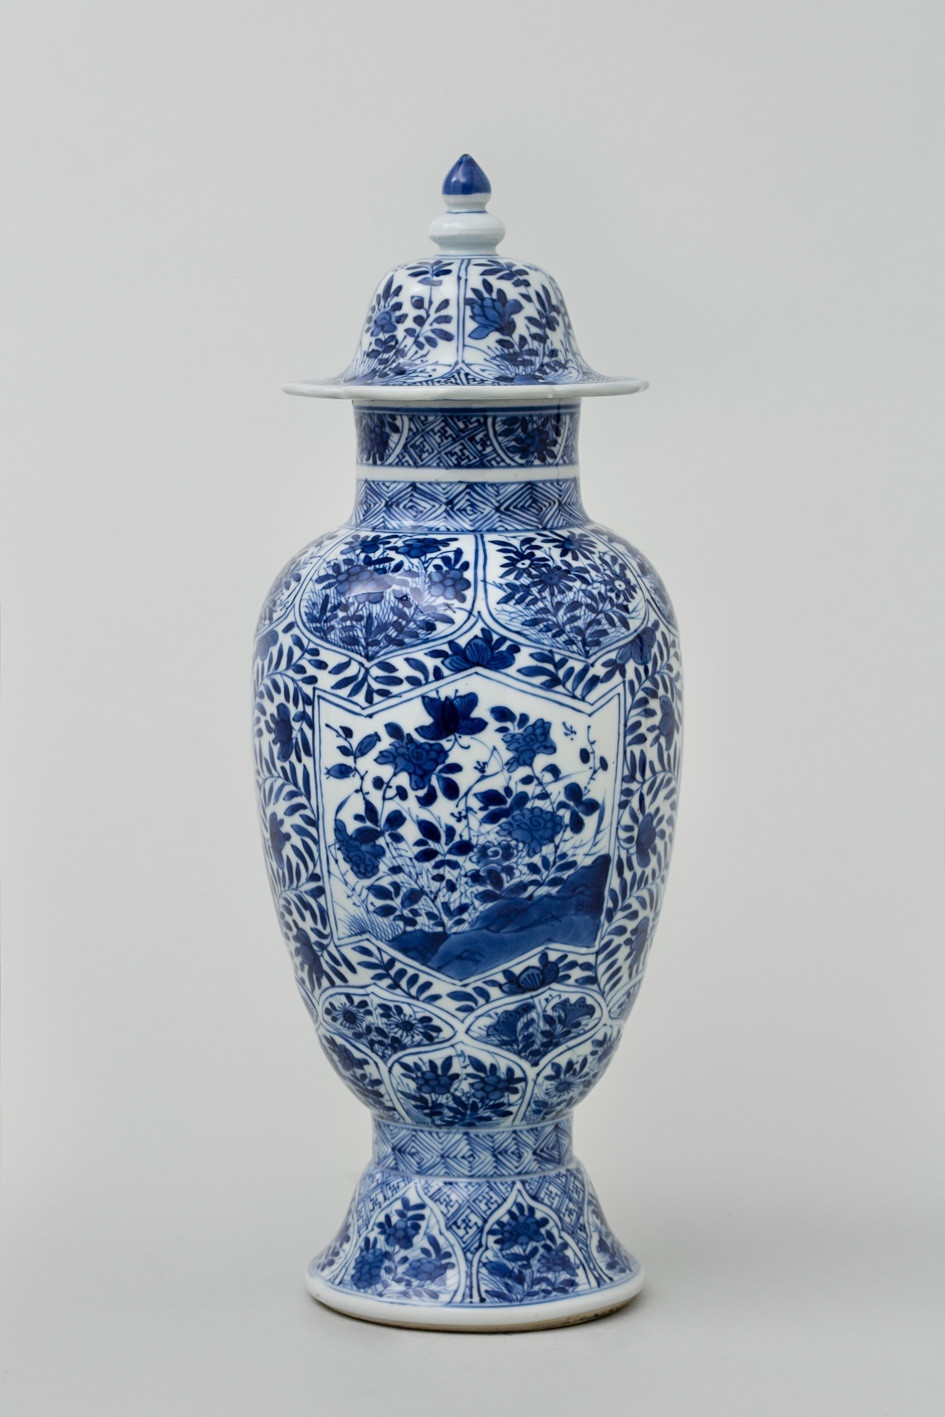 Large Cobalt Blue Vase Of A Chinese Blue and White Baluster Vase and Cover Kangxi 1662 172 Intended for A Chinese Blue and White Baluster Vase and Cover